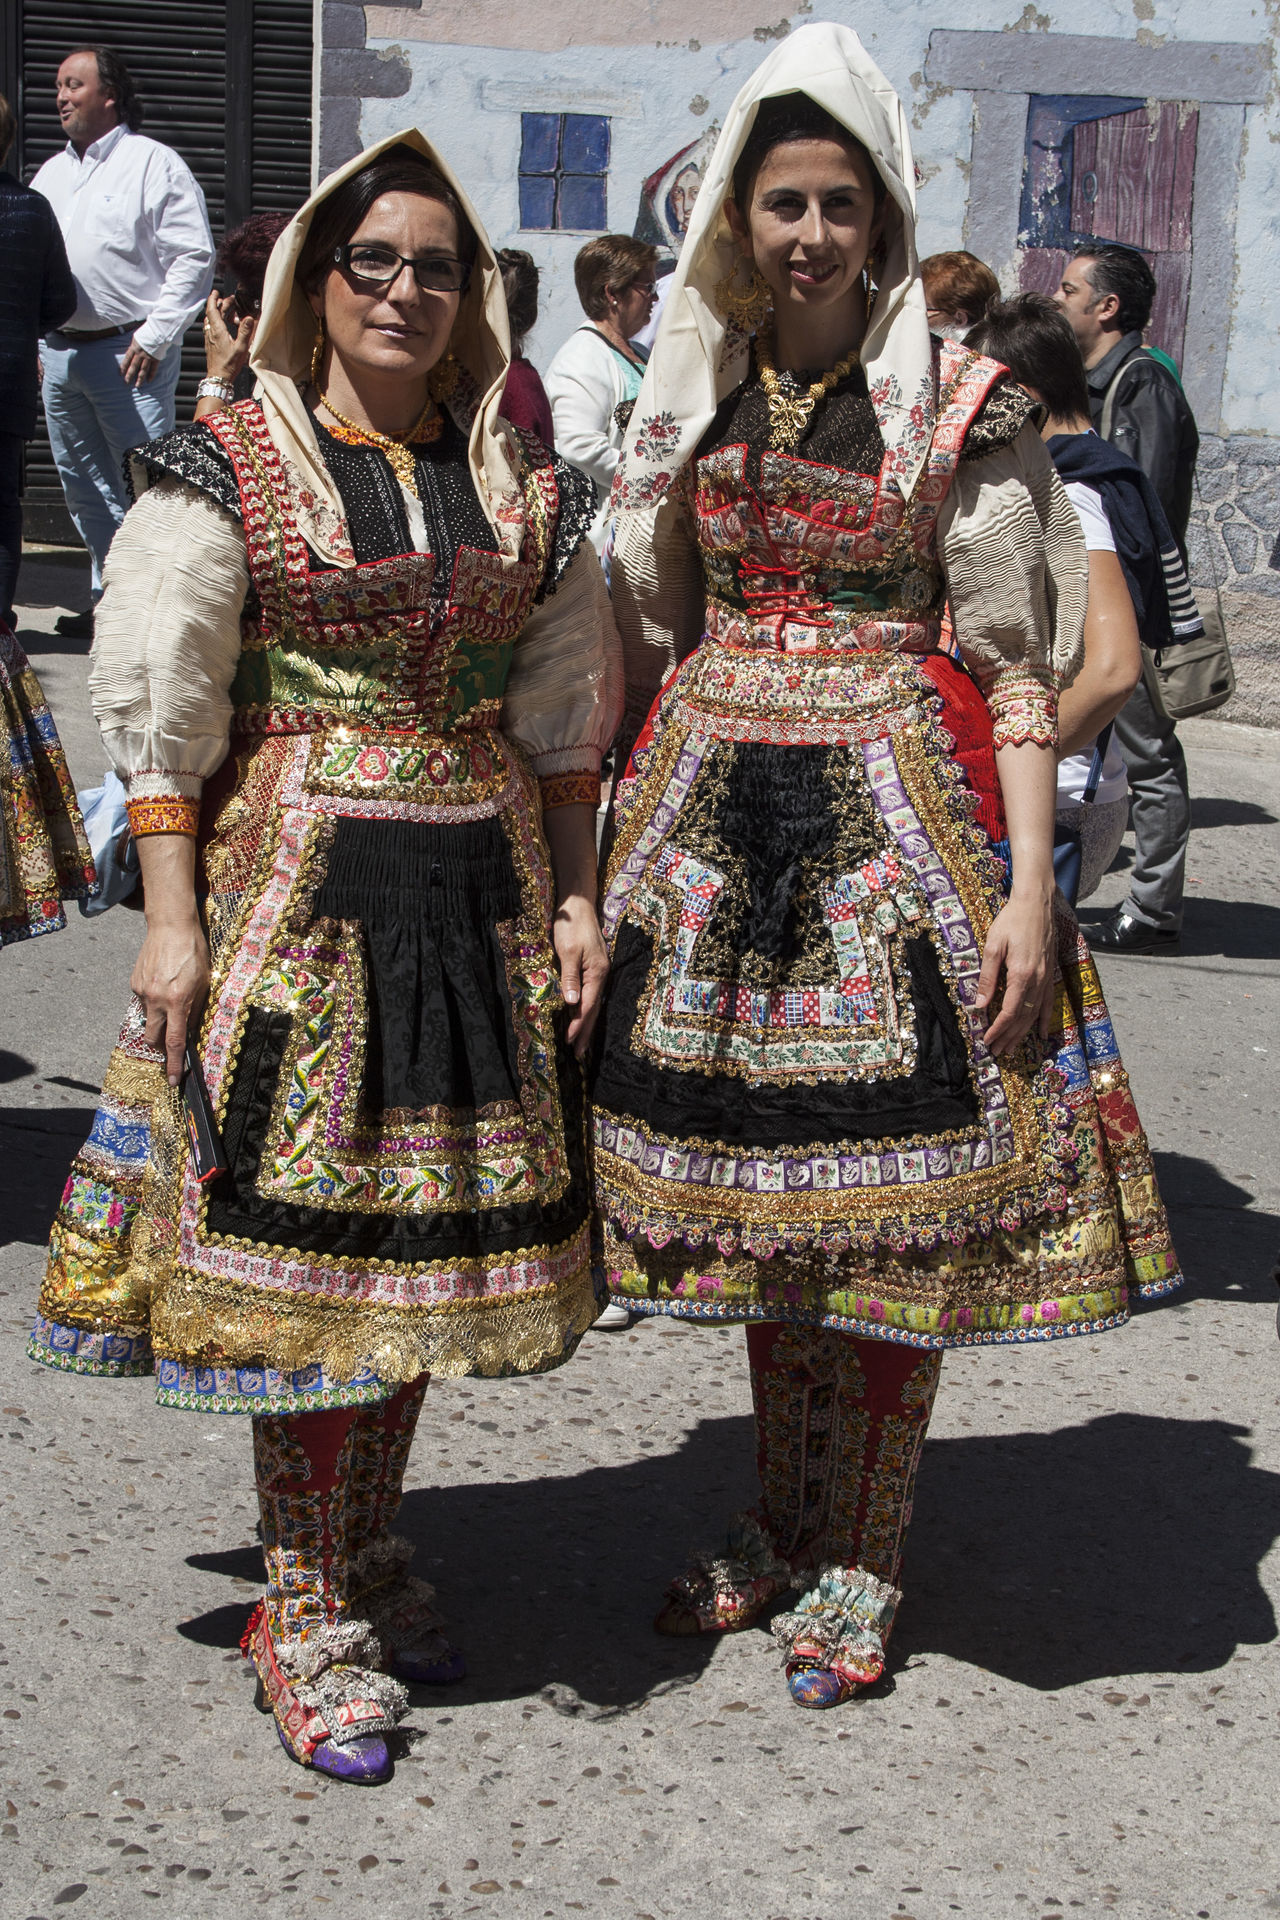 Architecture Building Exterior Day Friendship Front View Full Length Happiness Lagartera Lagartera Costumes Lagarterana Leisure Activity Lifestyles Looking At Camera Mid Adult Multi Colored Outdoors Portrait Real People Smiling Standing Togetherness Traditional Clothing Women Young Adult Young Women